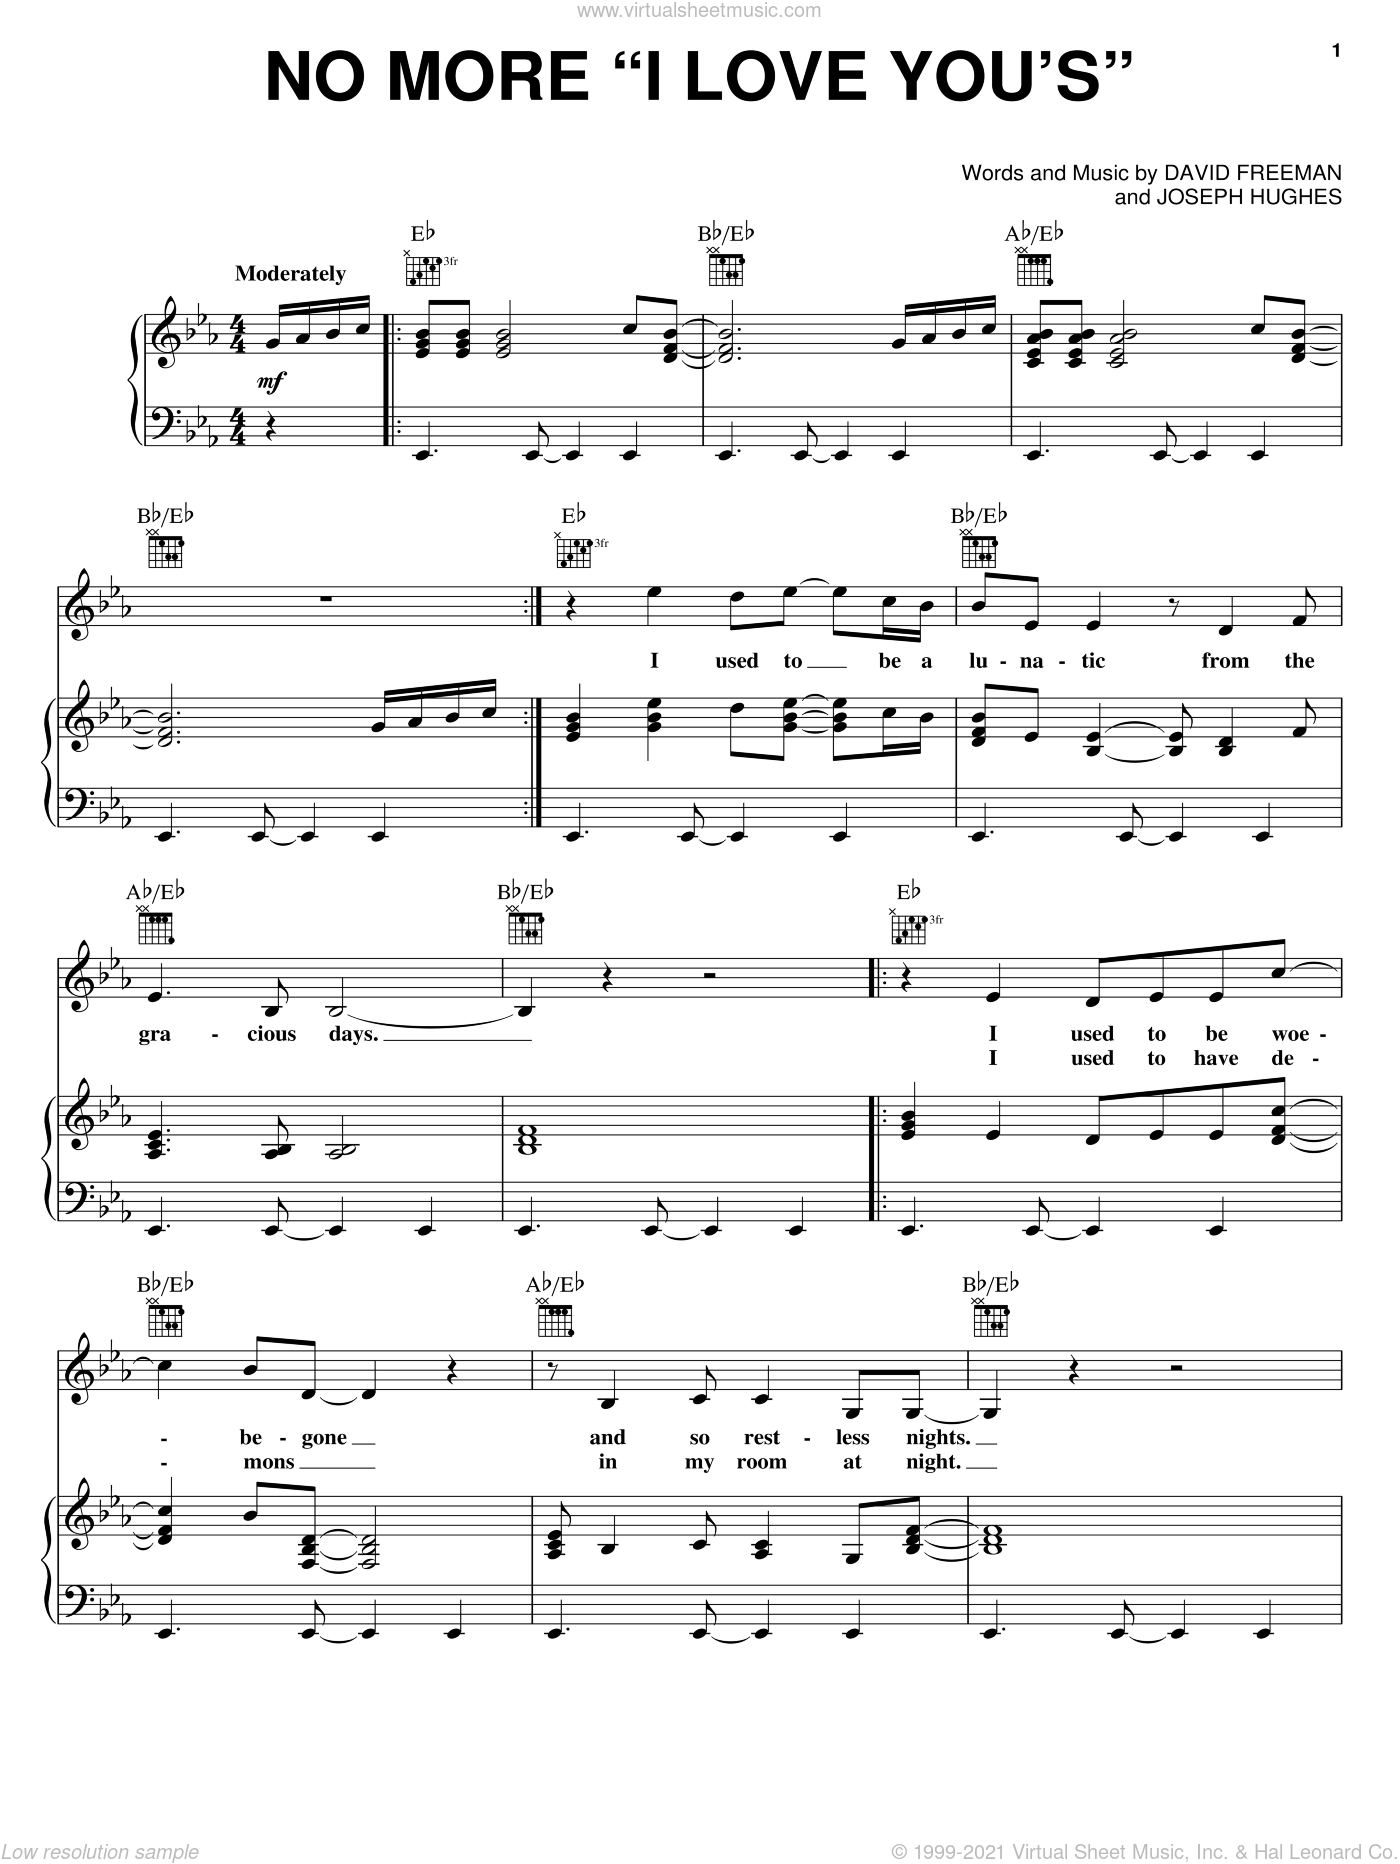 No More 'I Love You's' sheet music for voice, piano or guitar by Joseph Hughes